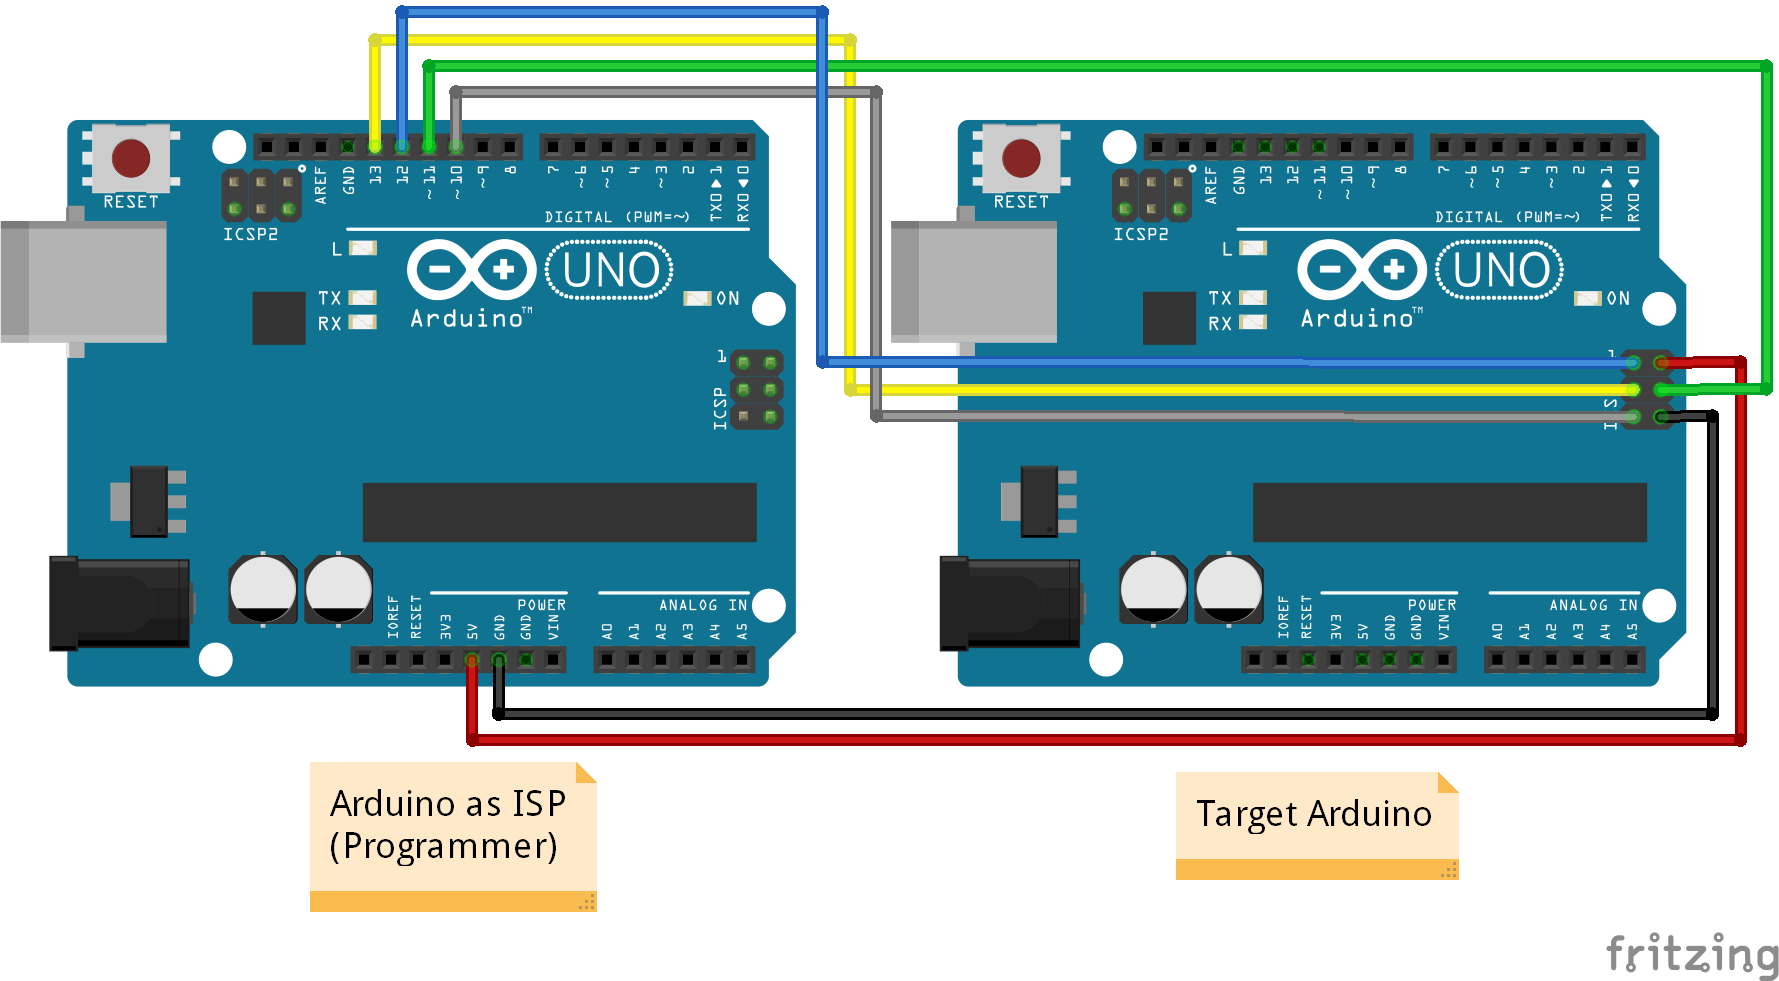 Installing An Arduino Bootloader Uno R3 Atmega328p 16u2 Dip Usb Cable Programming Fritzing Diagram Of As Isp Connected To Target